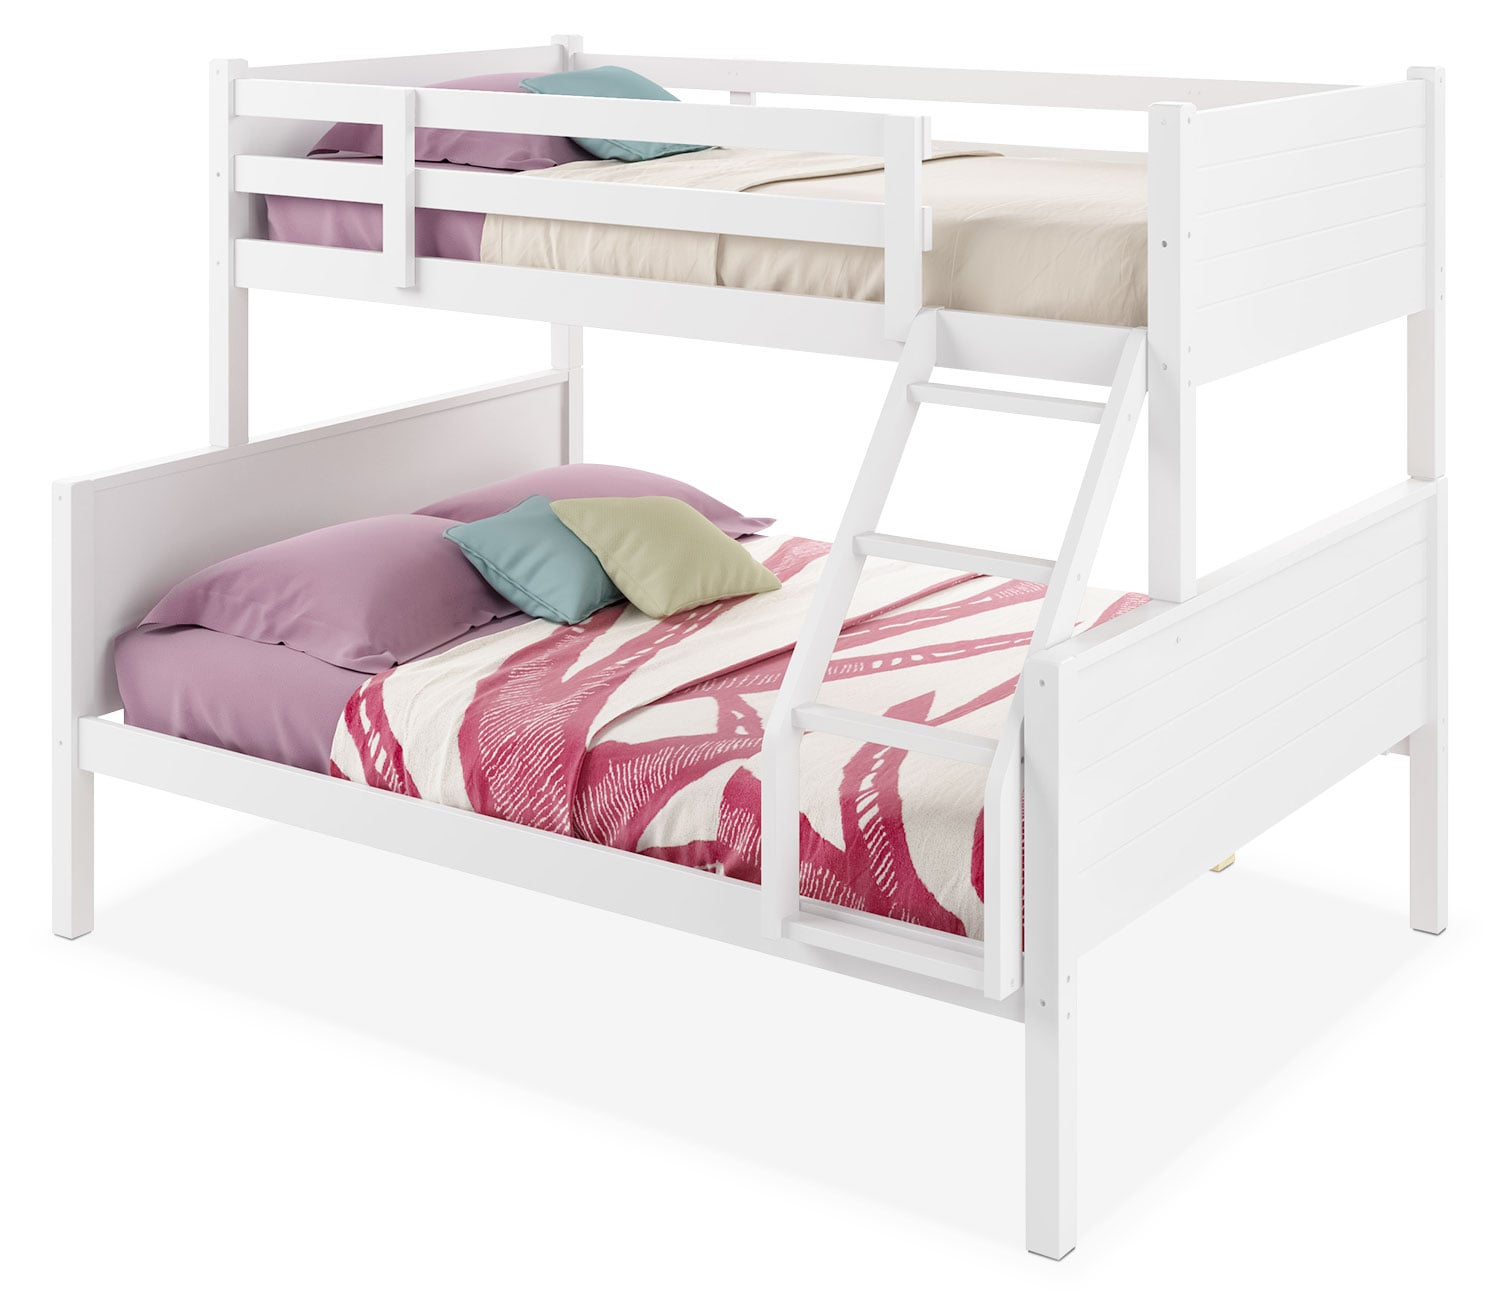 CorLiving Twin/Full Bunk Bed with Panel Headboards – White